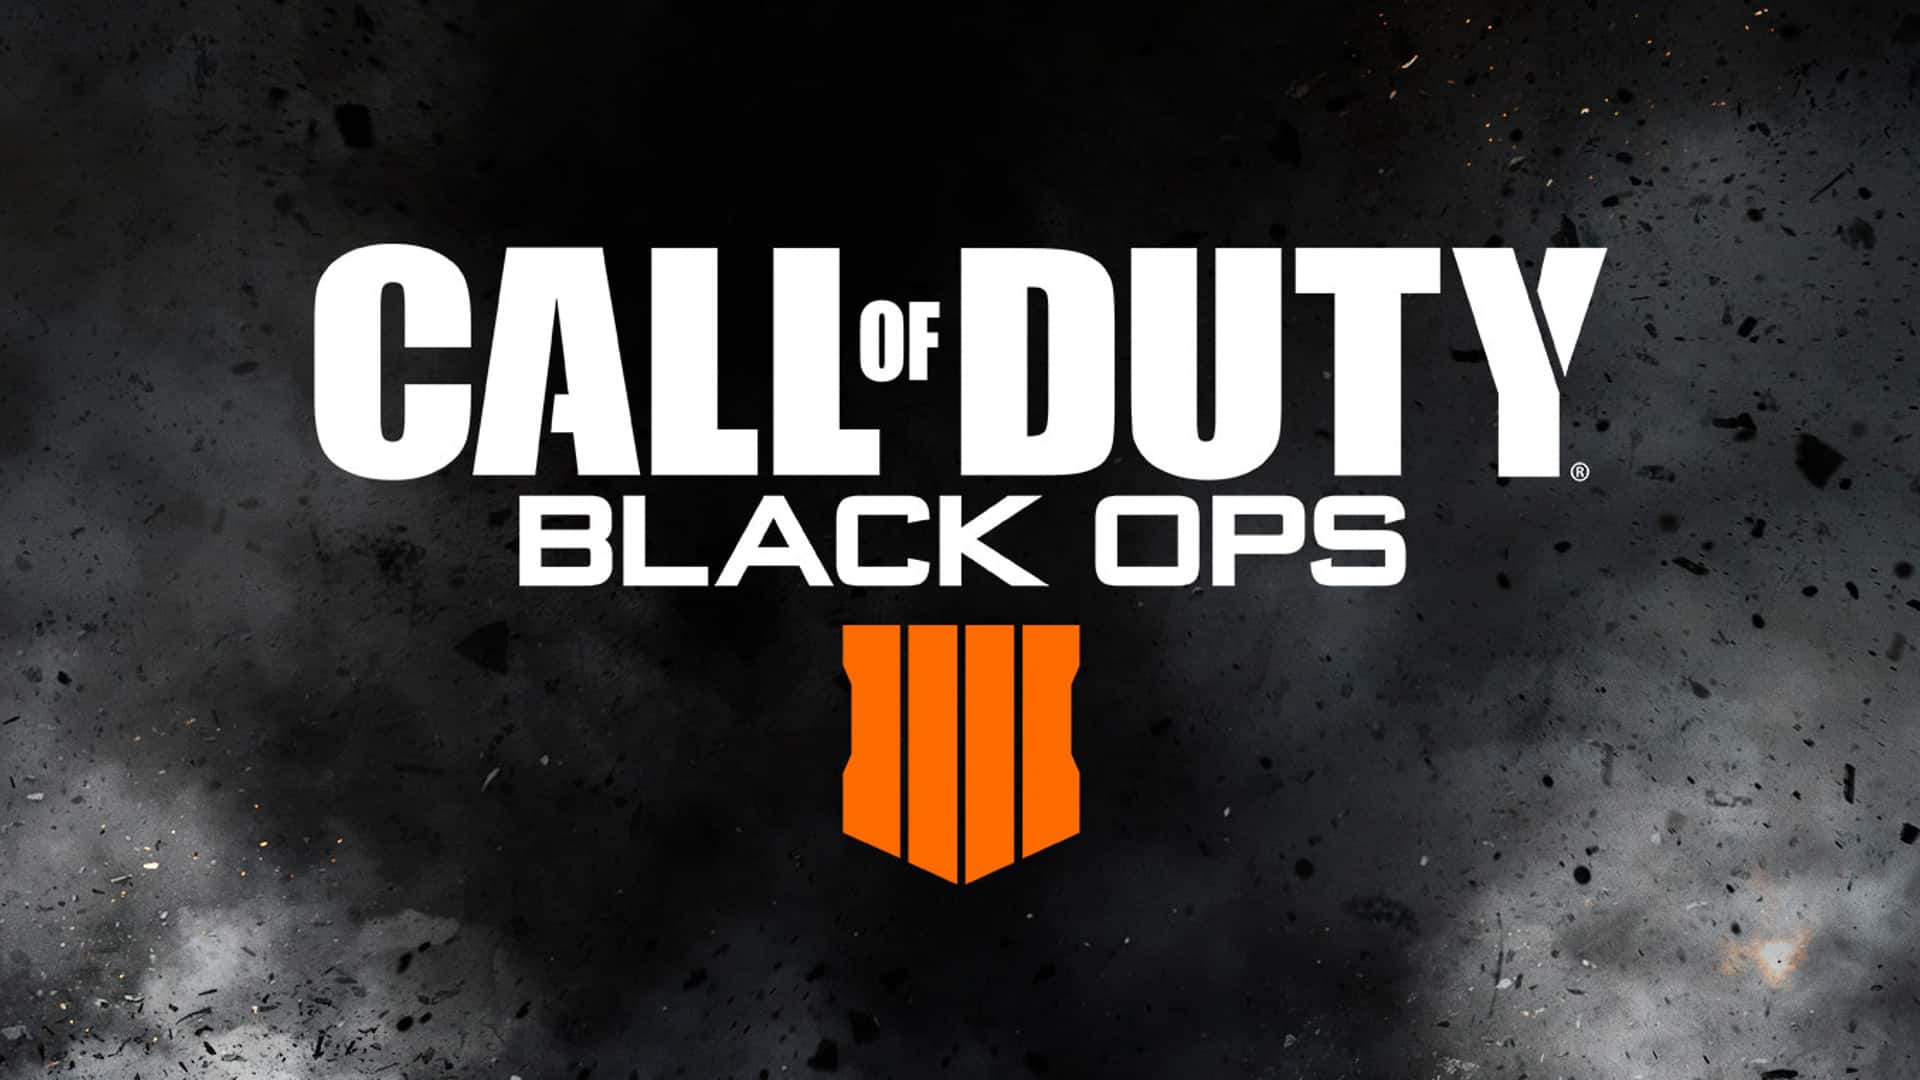 Announcing Call of Duty: Black Ops 4!